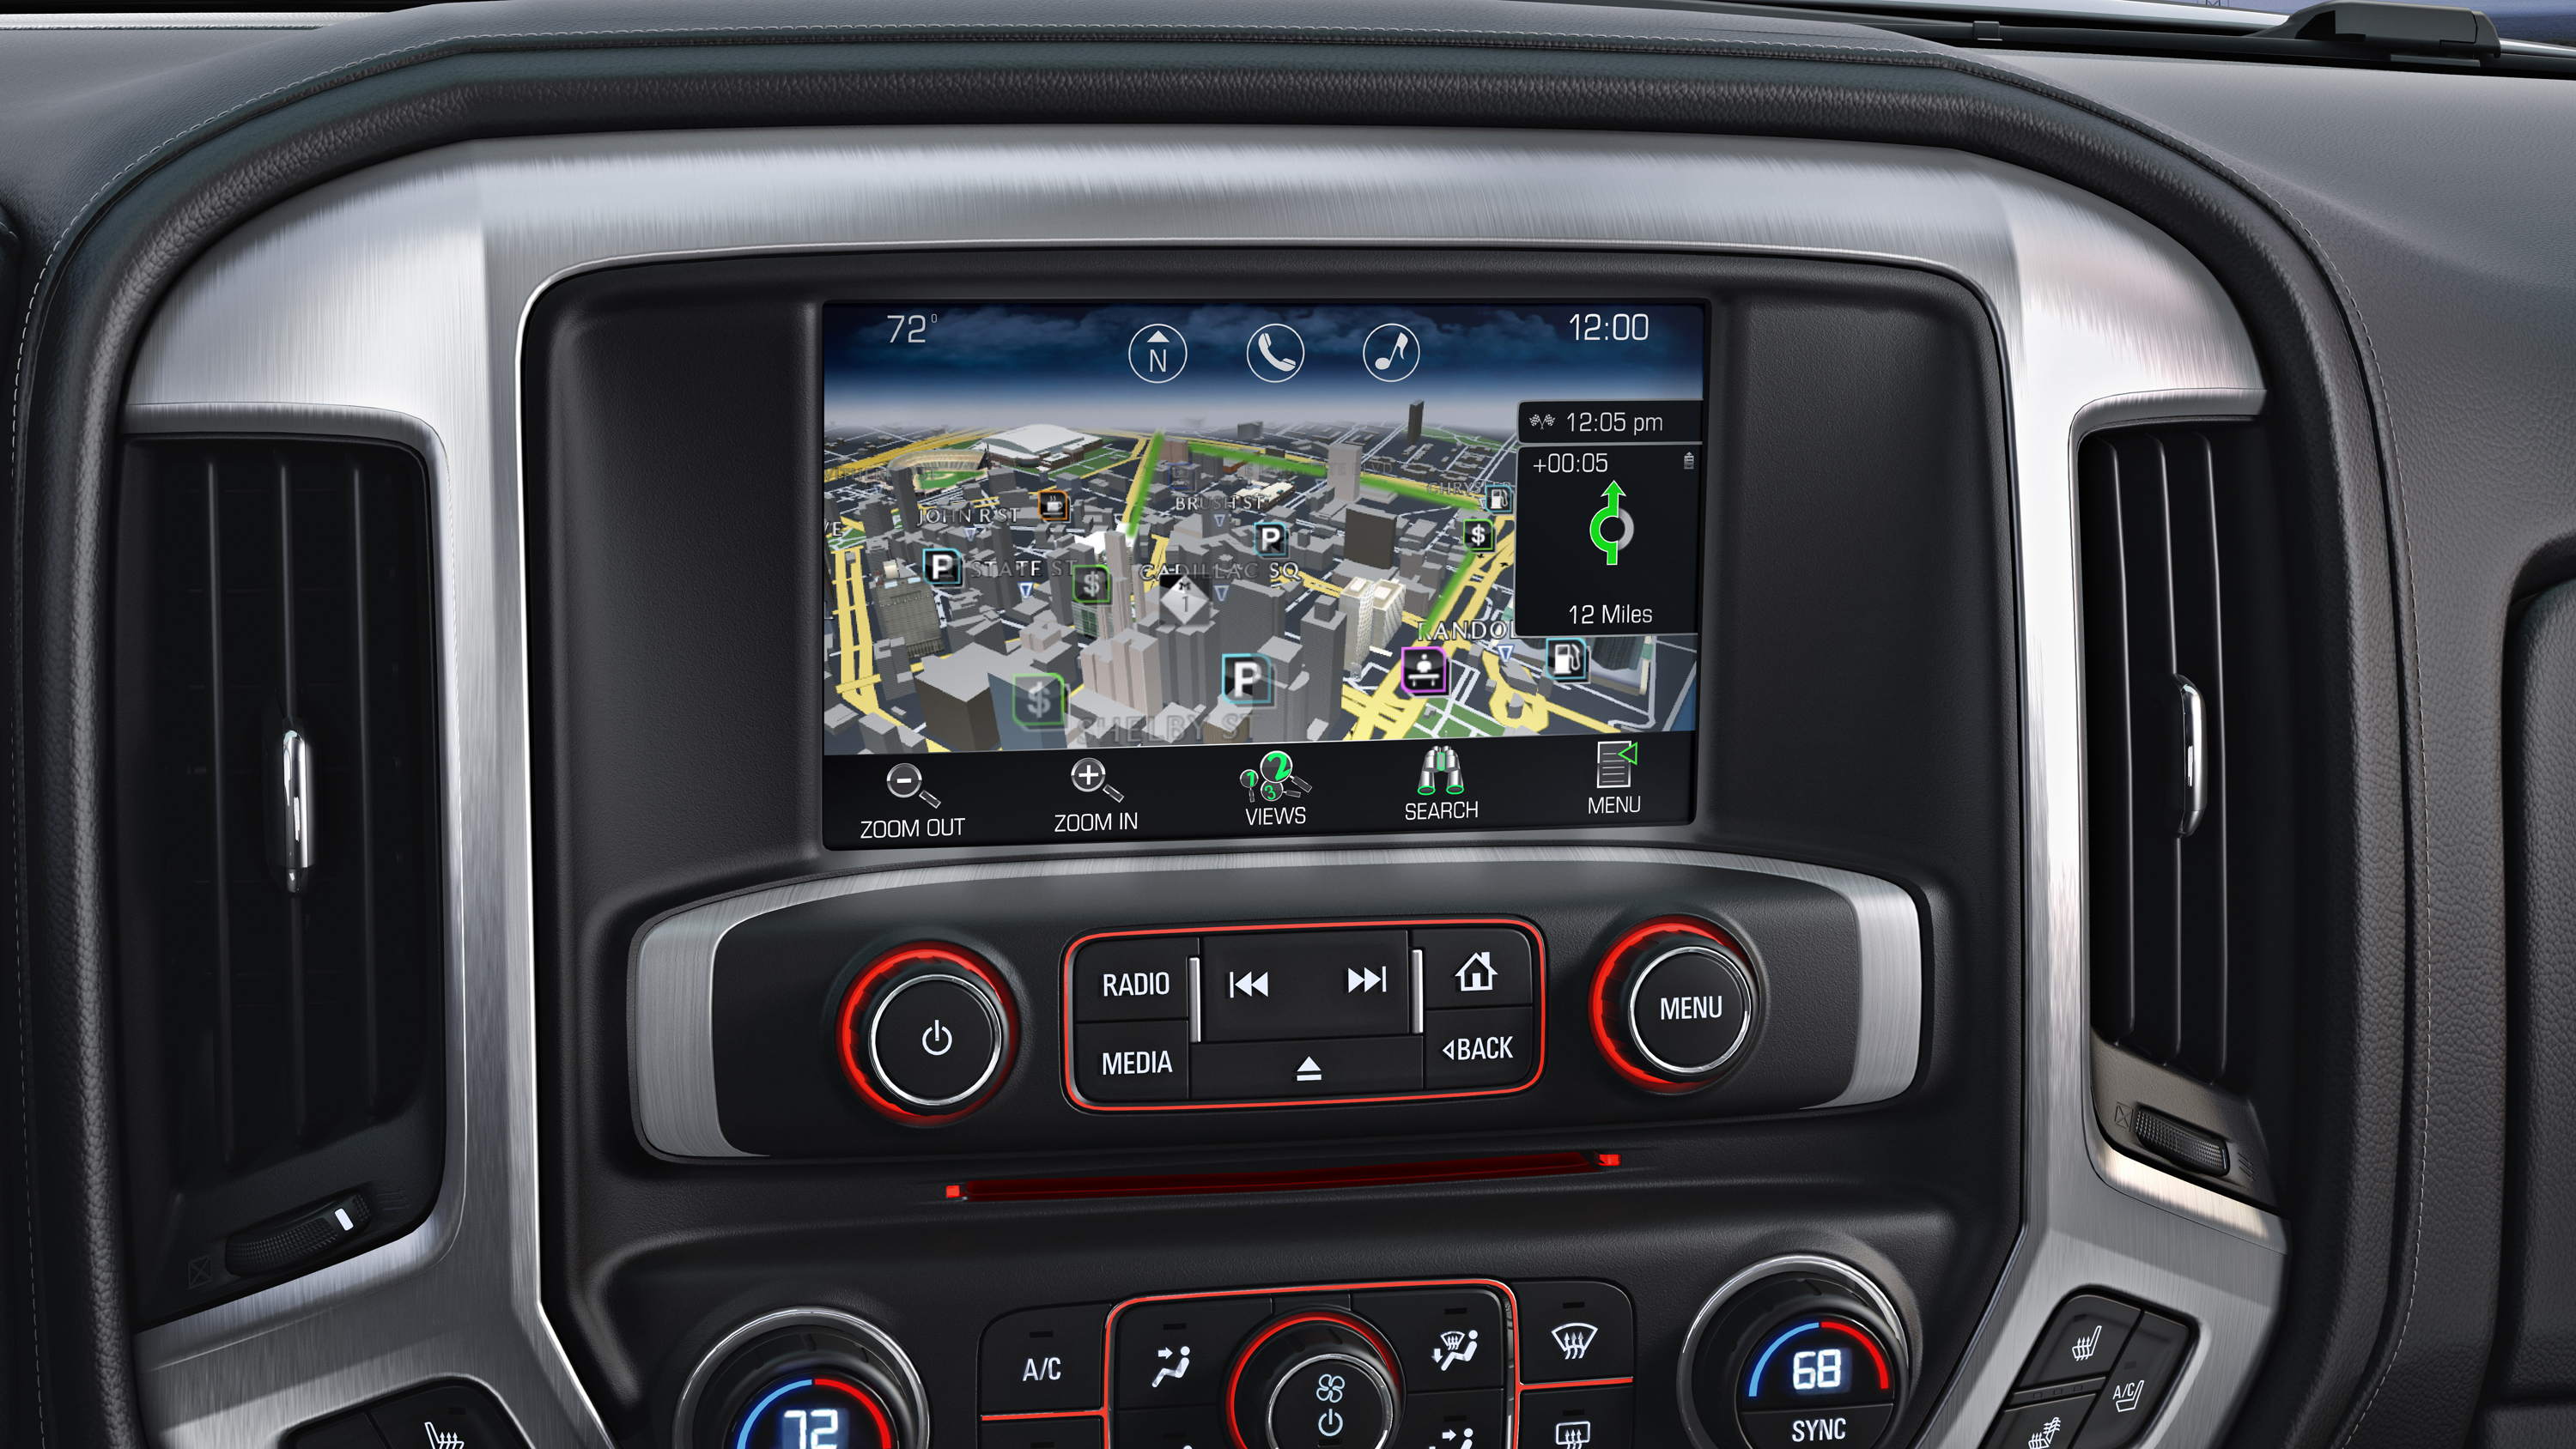 2014 GMC Sierra SLT Interior Color Touch Radio with ...